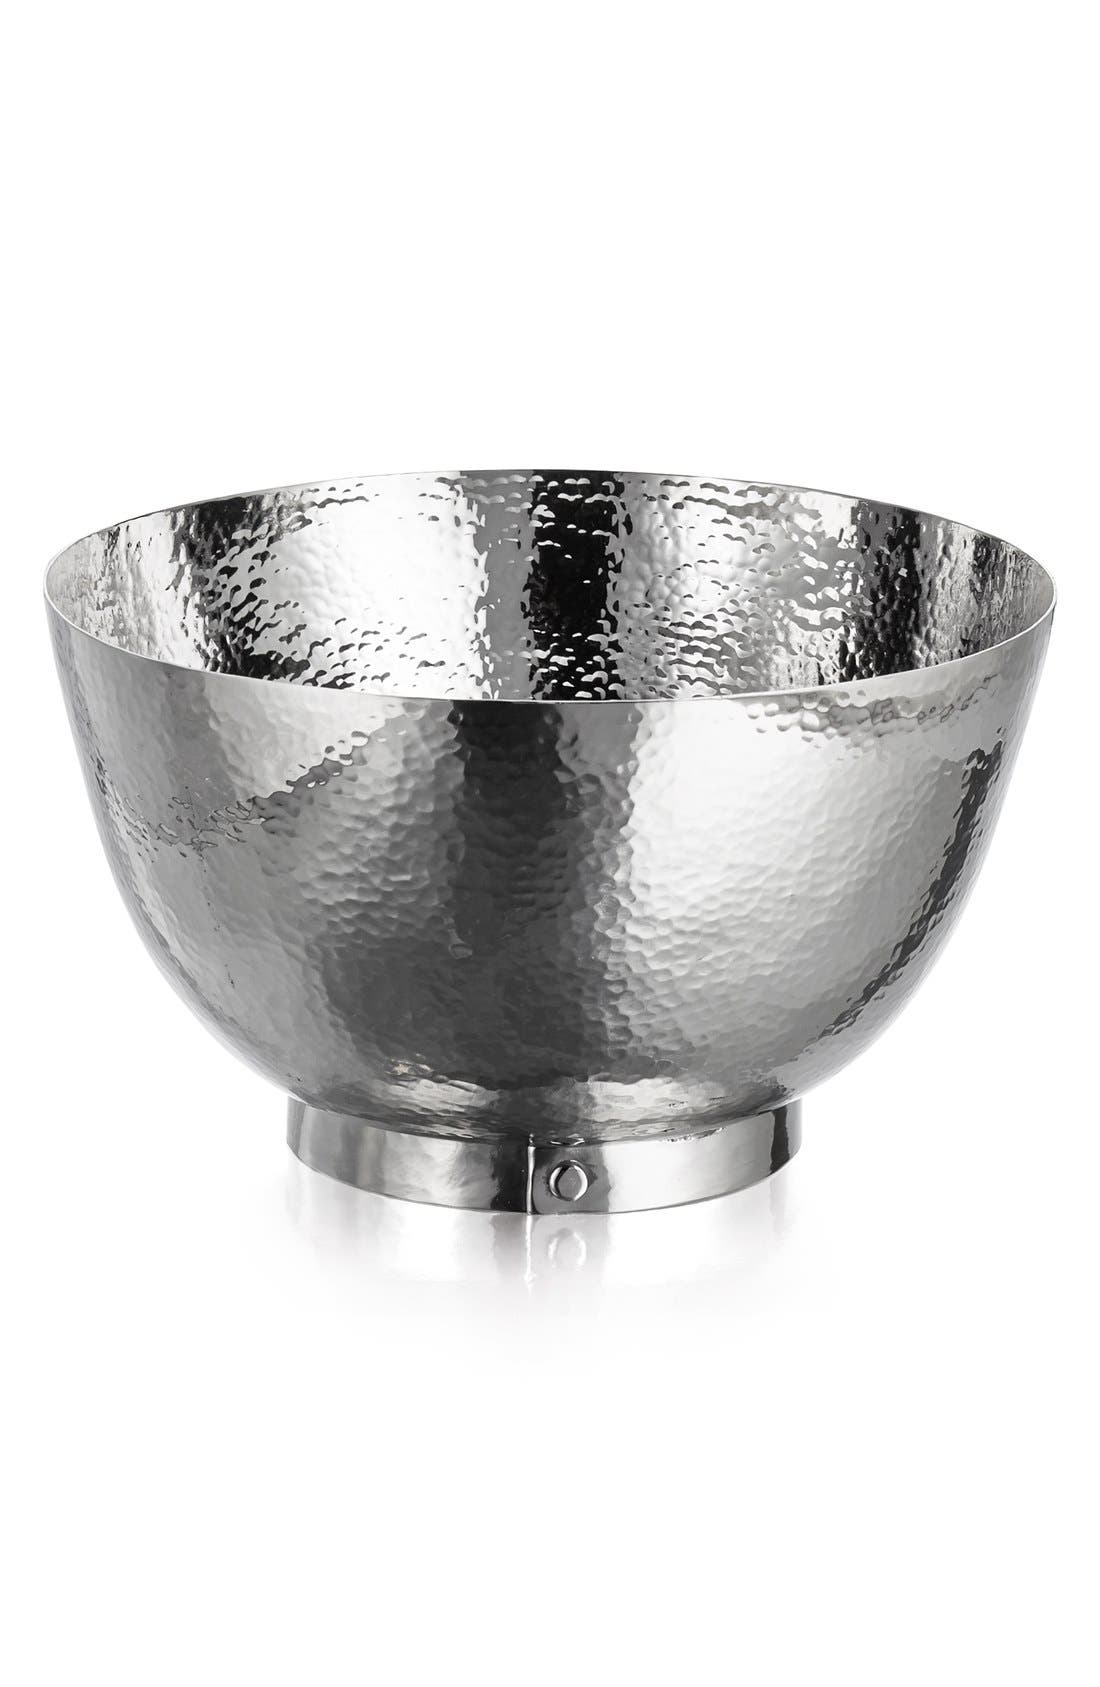 Main Image - Michael Aram 'Rivet' Hammered Stainless Steel Bowl